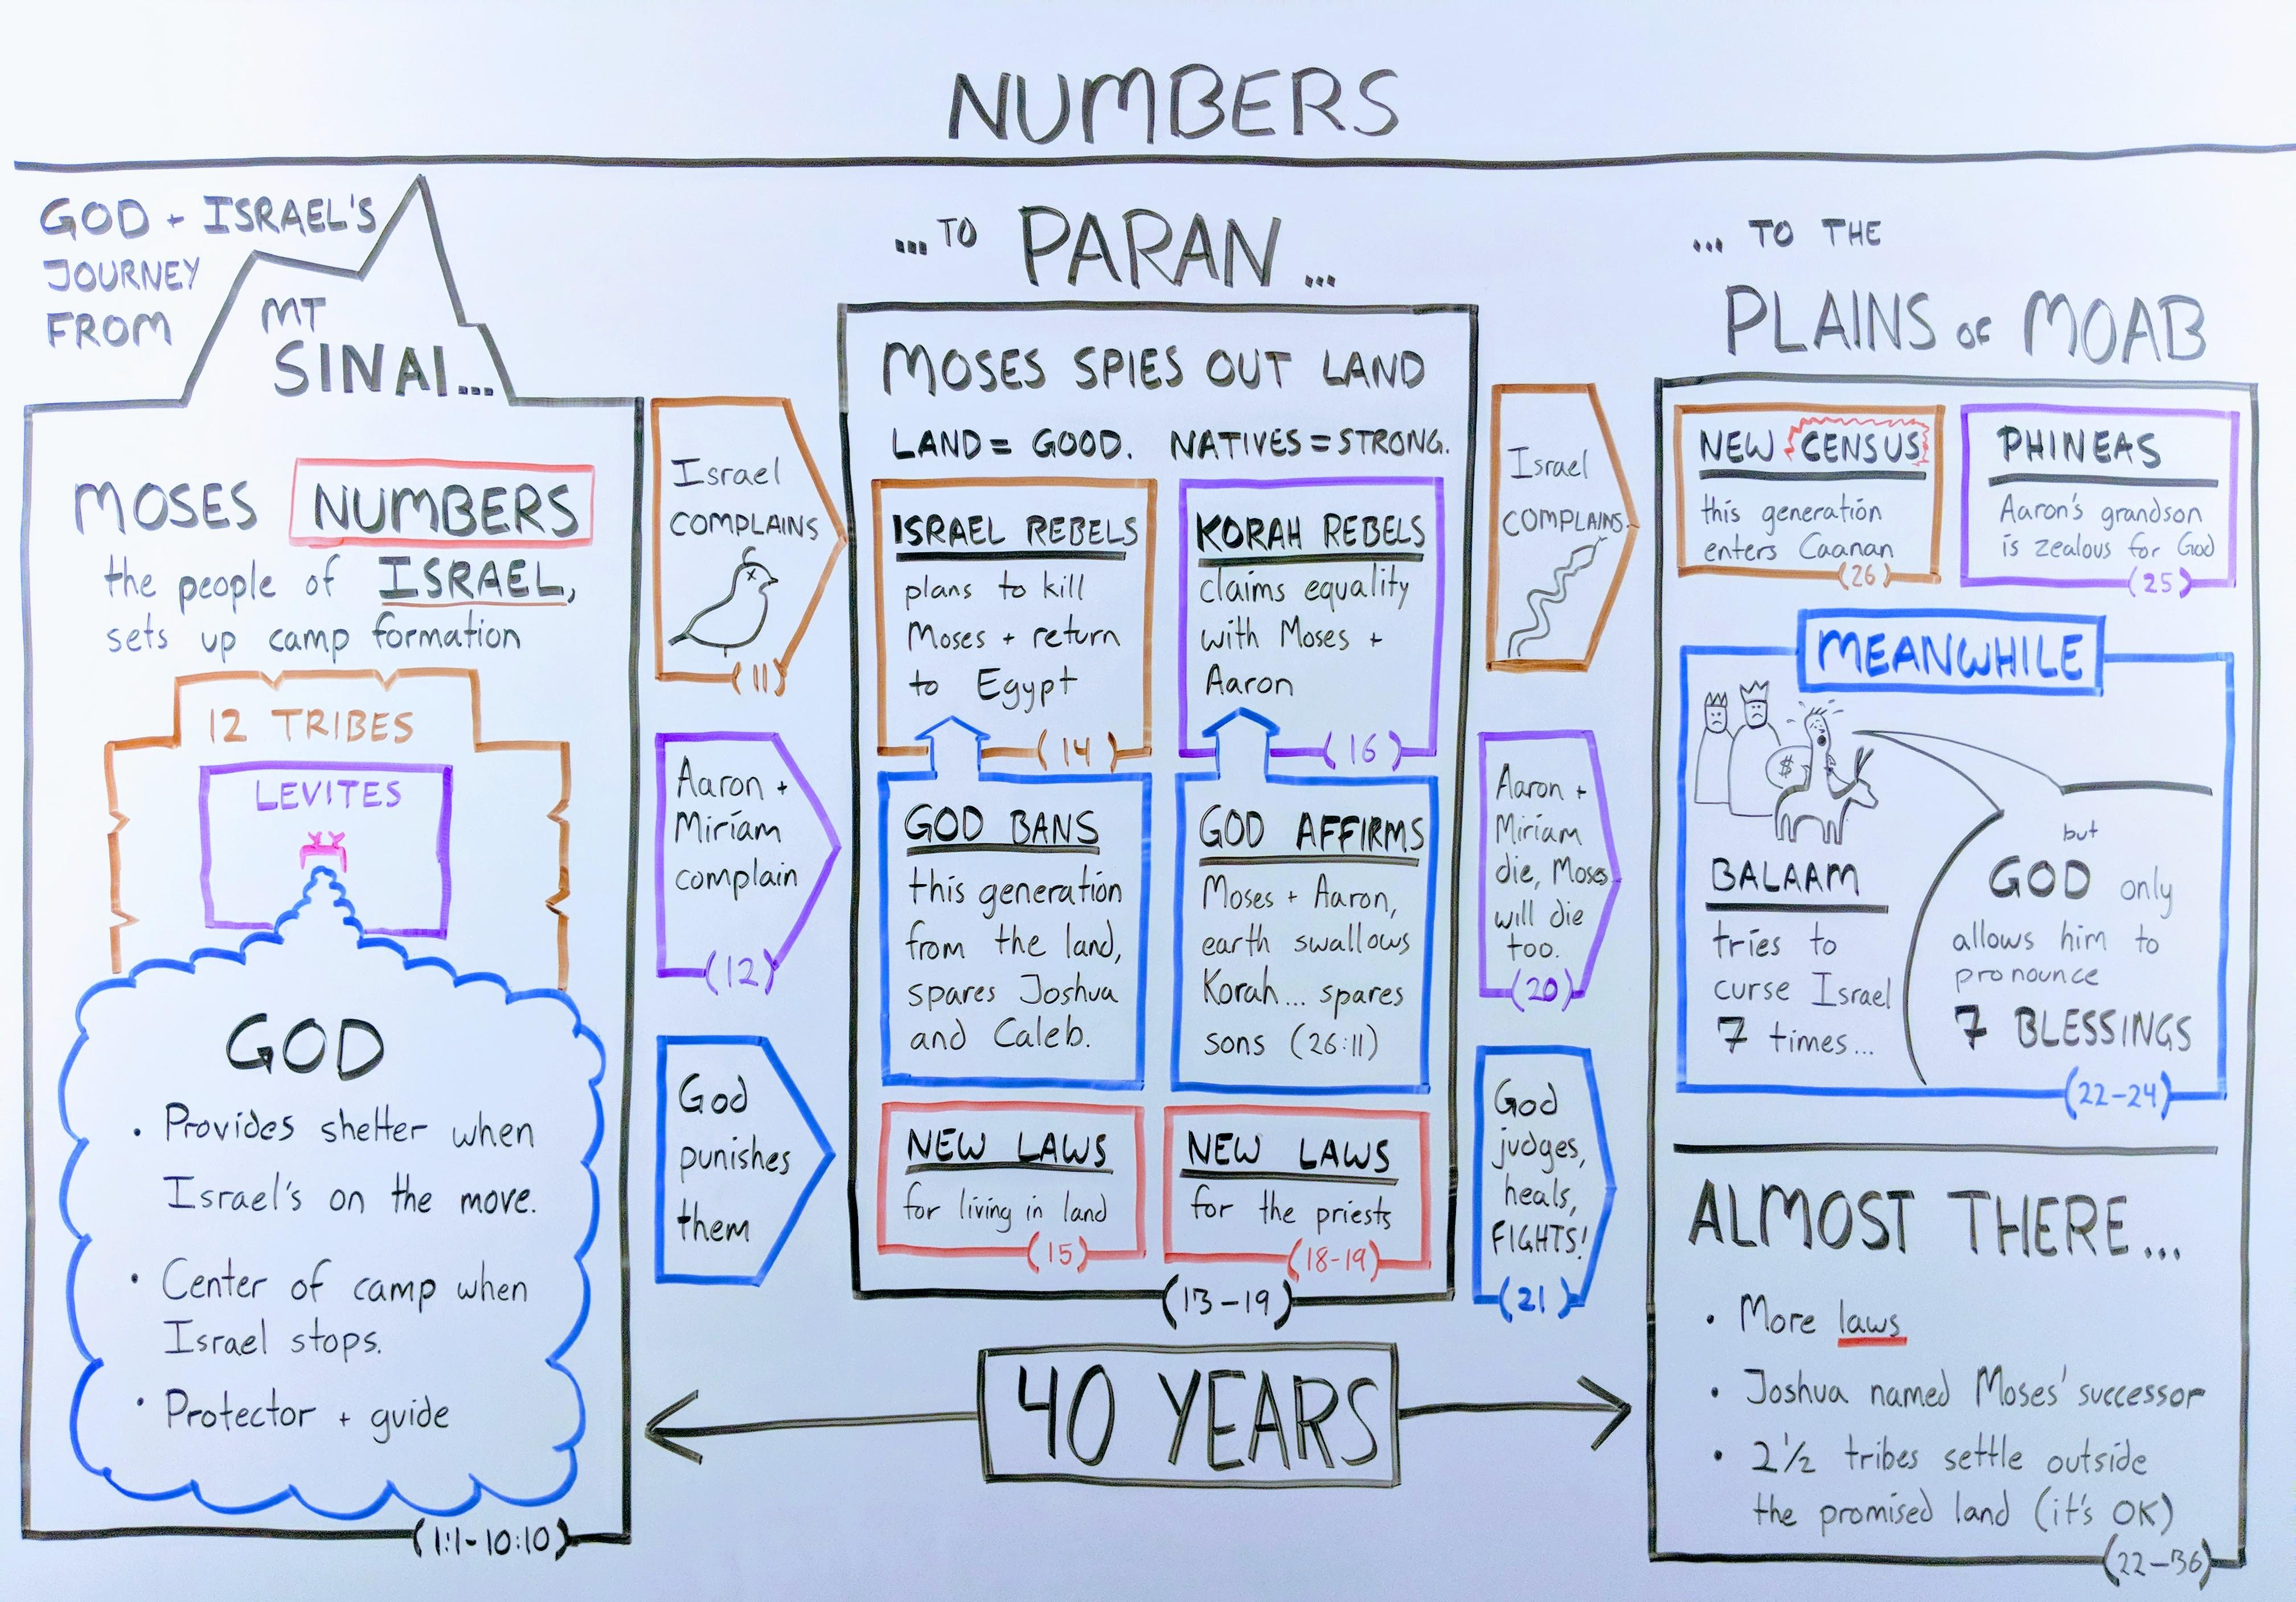 Outline of the Book of Numbers